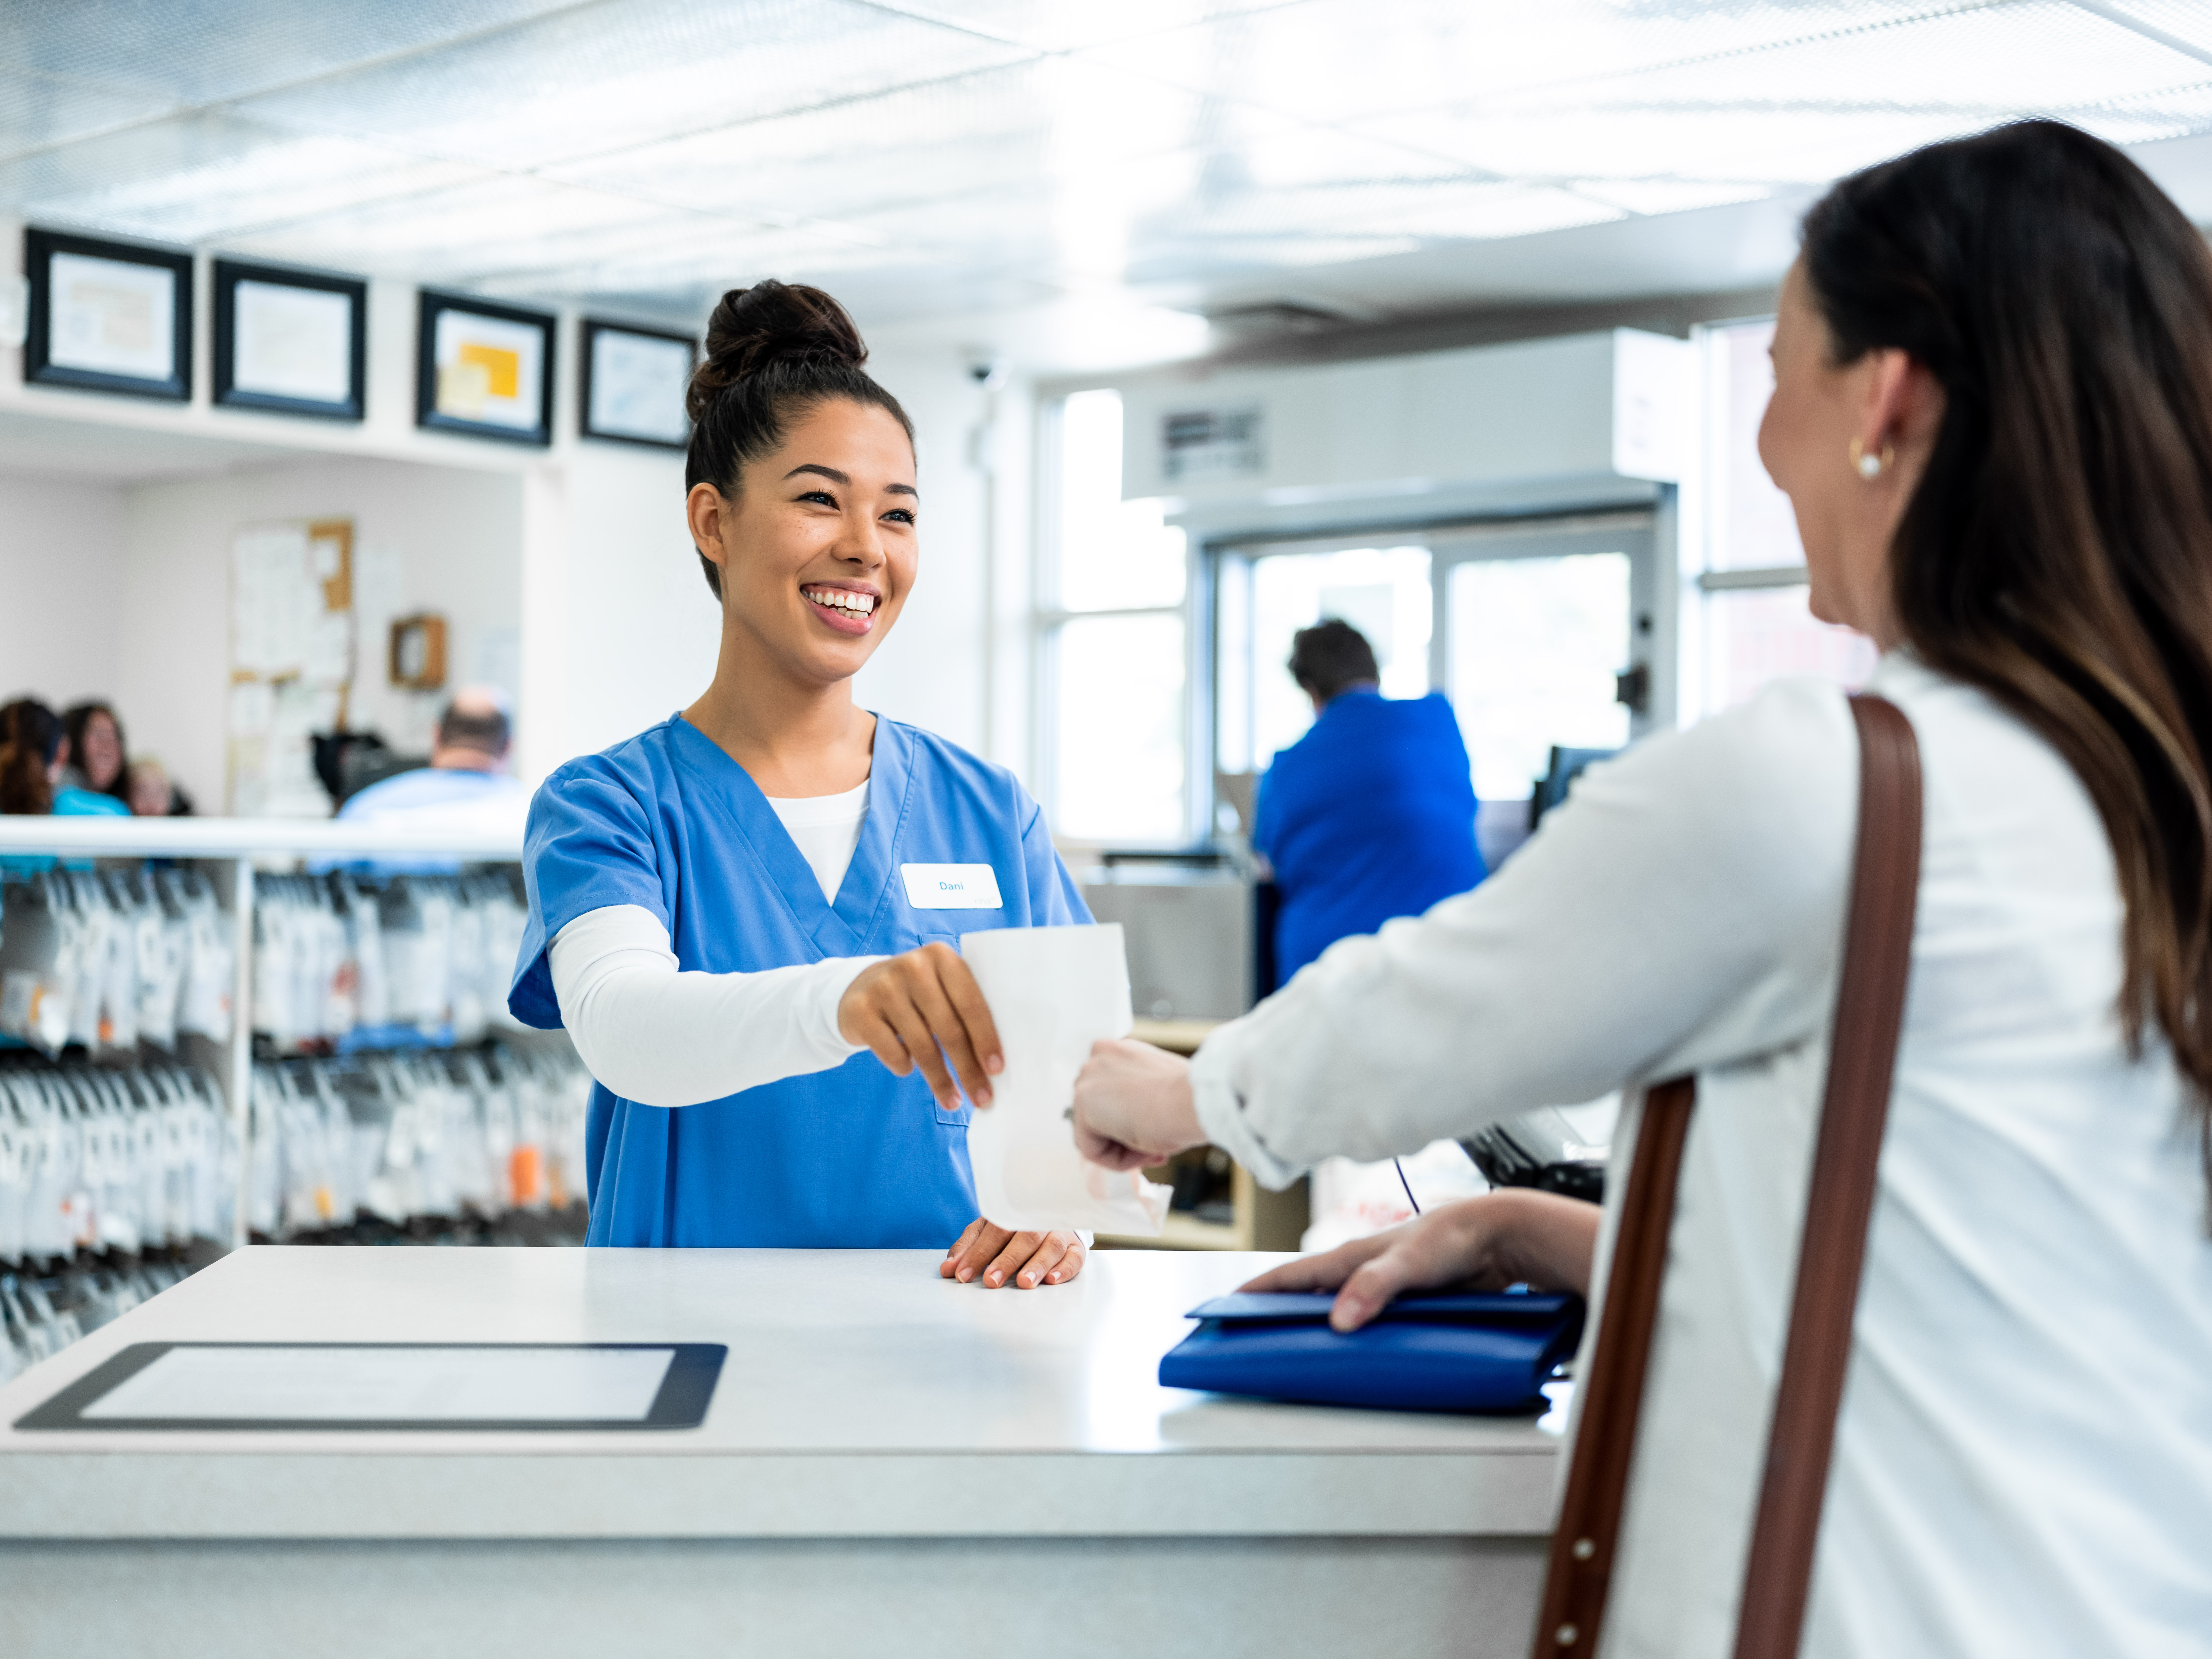 4 things pharmacy technicians can do to help create a safe environment